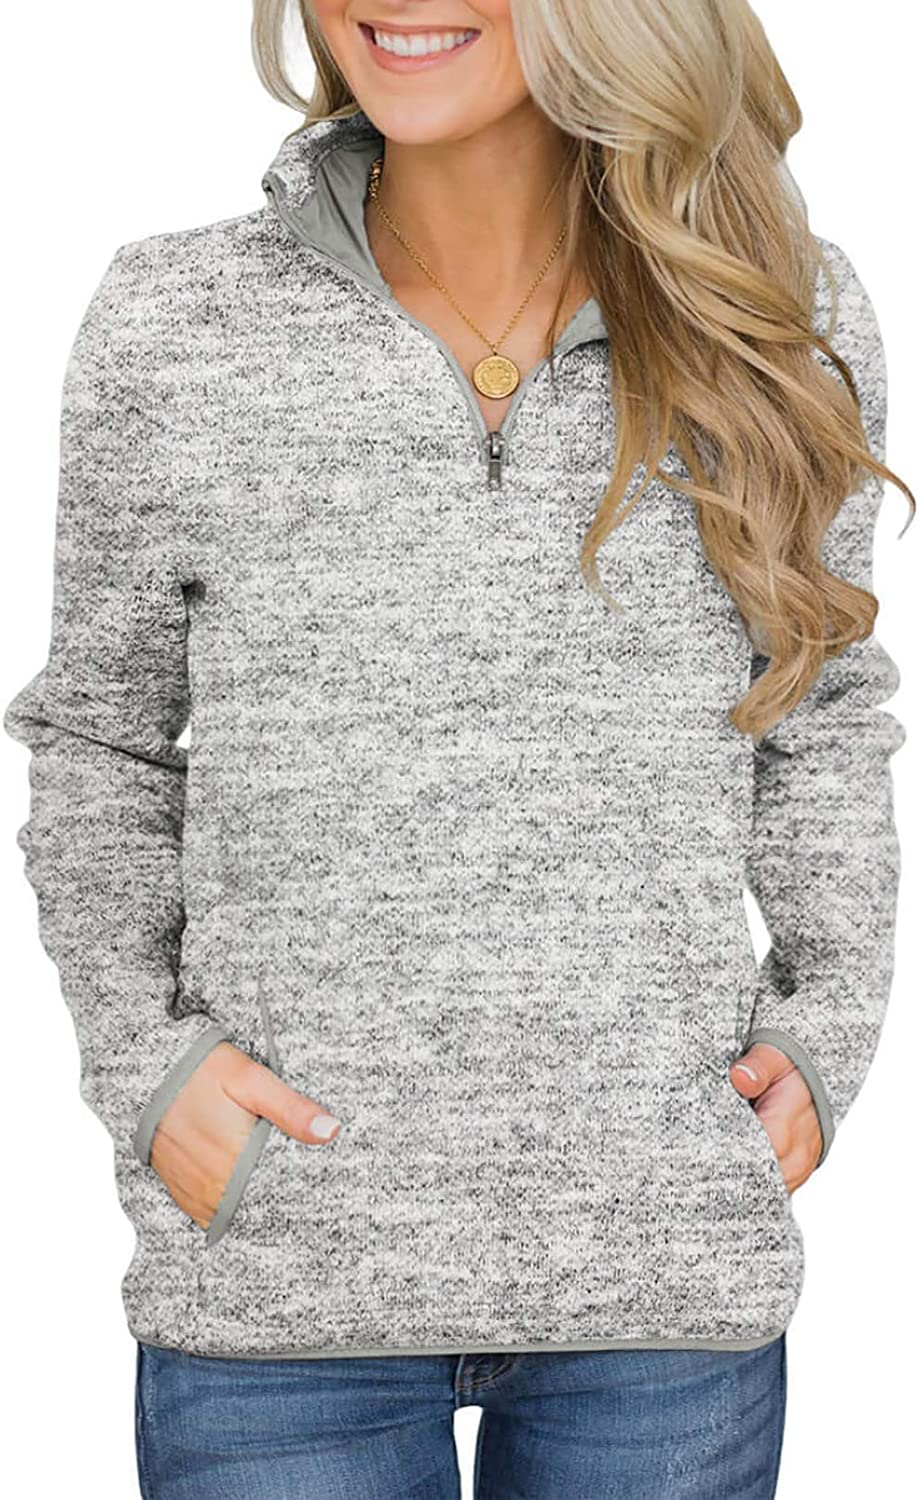 Welinone Womens Sweatshirts Quarter Zip Pullover Solid Casual Long Sleeve Tunic Tops with Pocket(S-XXL)